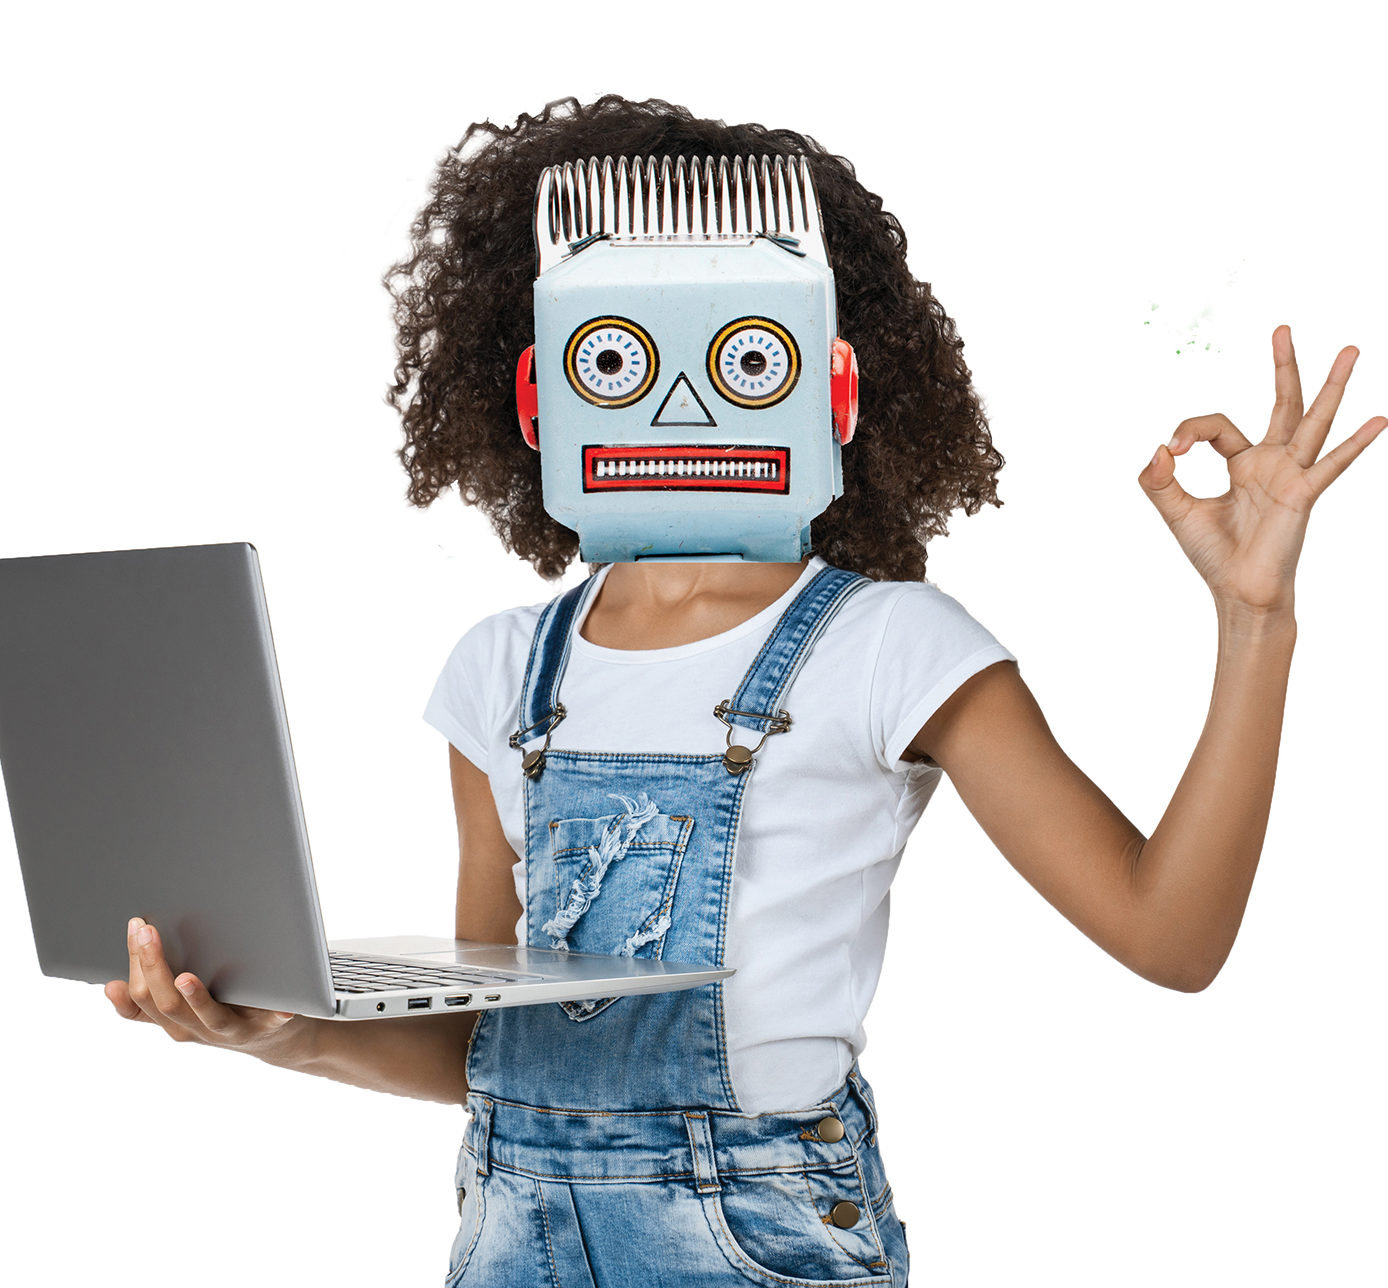 A New Direction image of a child with posing an OK sign with a Robot mask doing coding.jpg